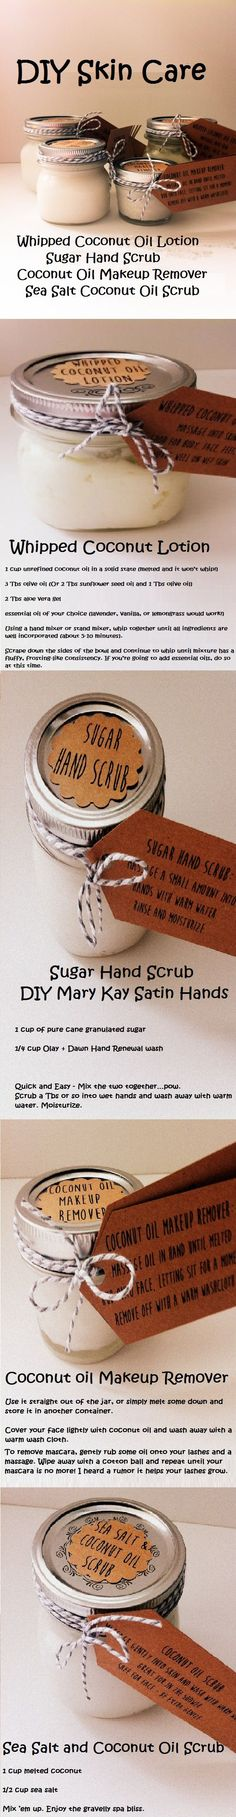 Love these quick and easy DIY skin care recipes. I like to use organic ingredients. Whipped coconut oil lotion recipe.  Sugar had scrub recipe (just like Mary Kay's Satin hands).  Coconut Oil Makeup Remover and Seal Salt Coconut Oil Scrub recipe.